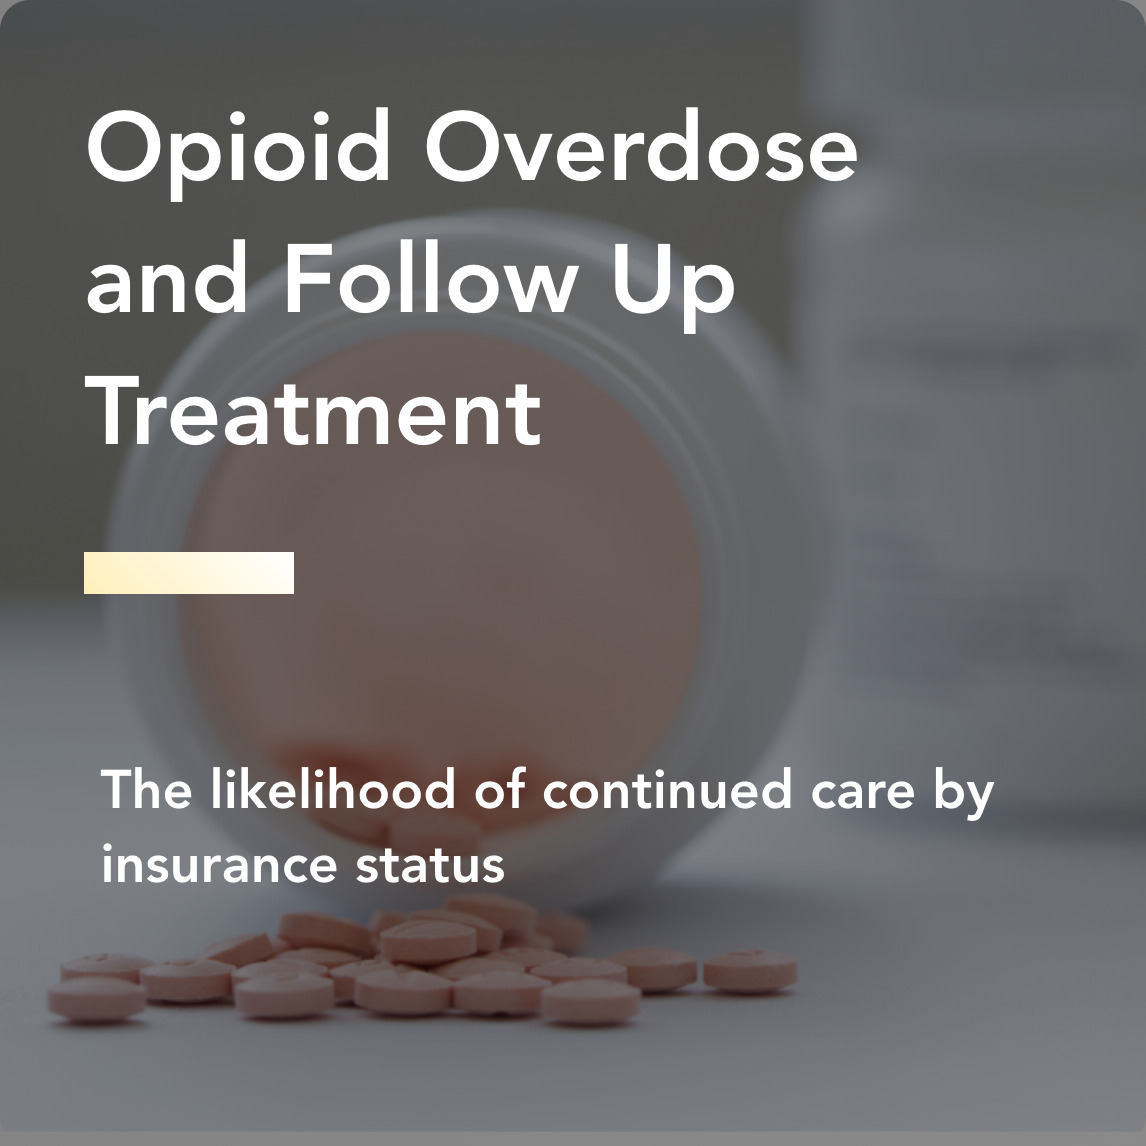 opioid overdose and follow up treatment